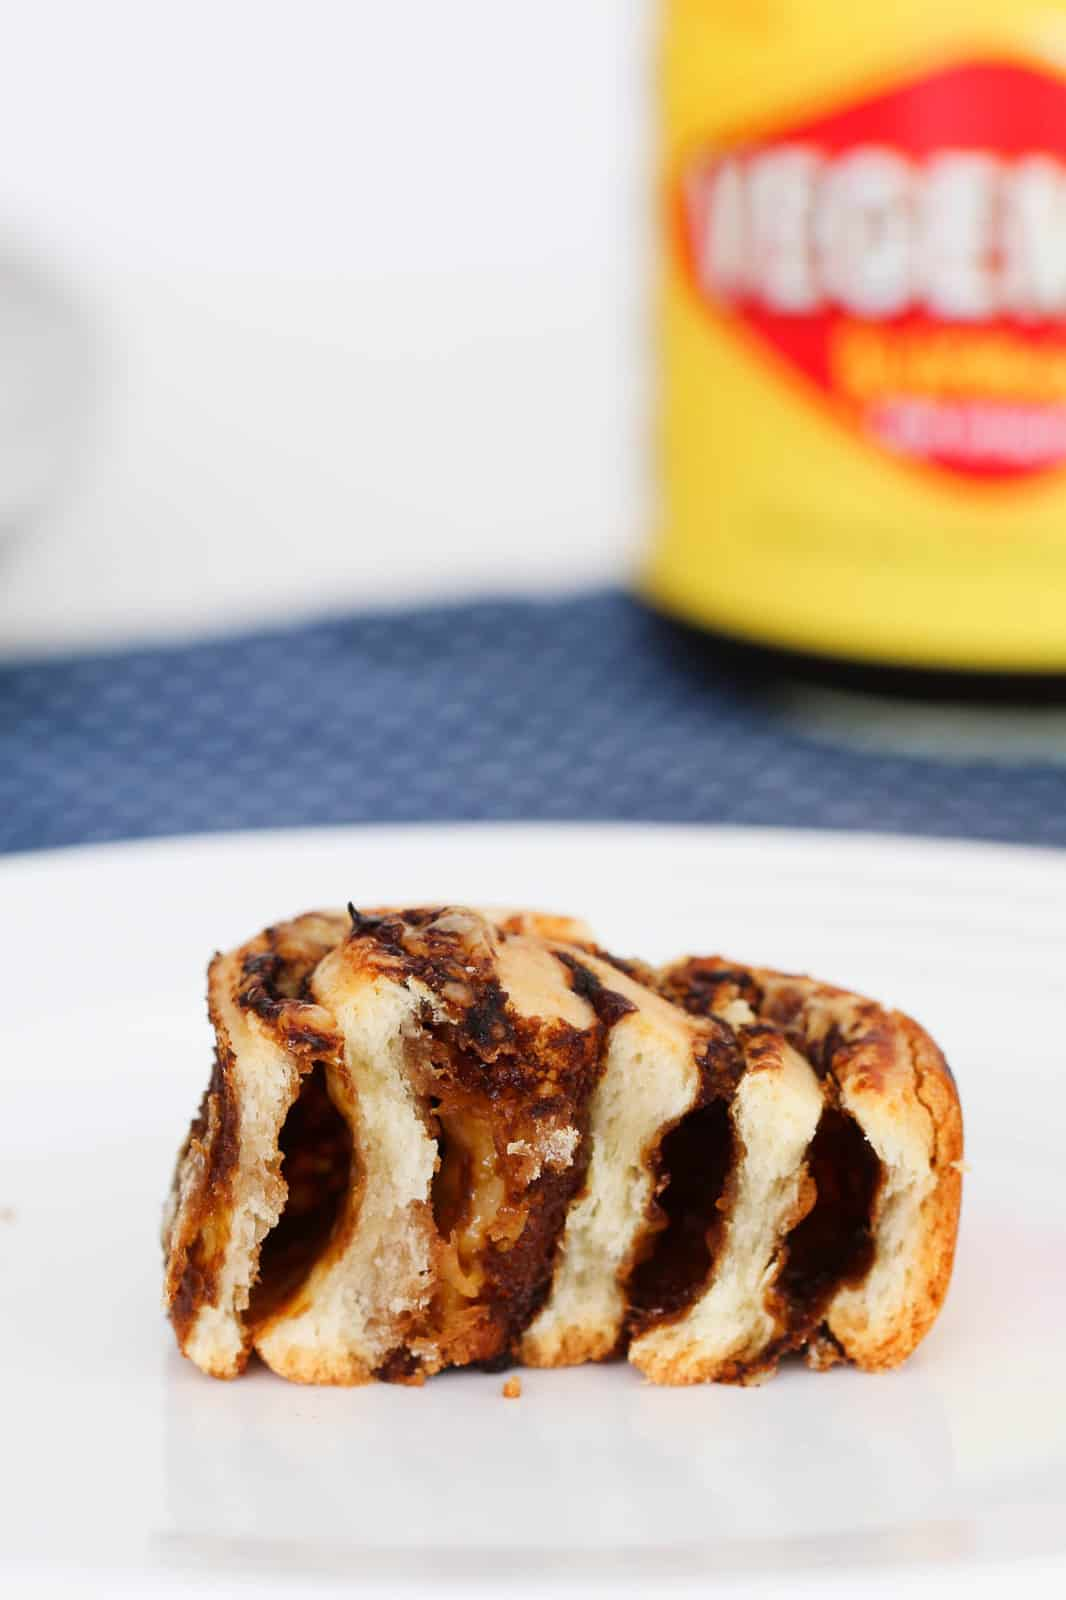 A baked scroll split to reveal the inside of a cheese and Vegemite scroll.